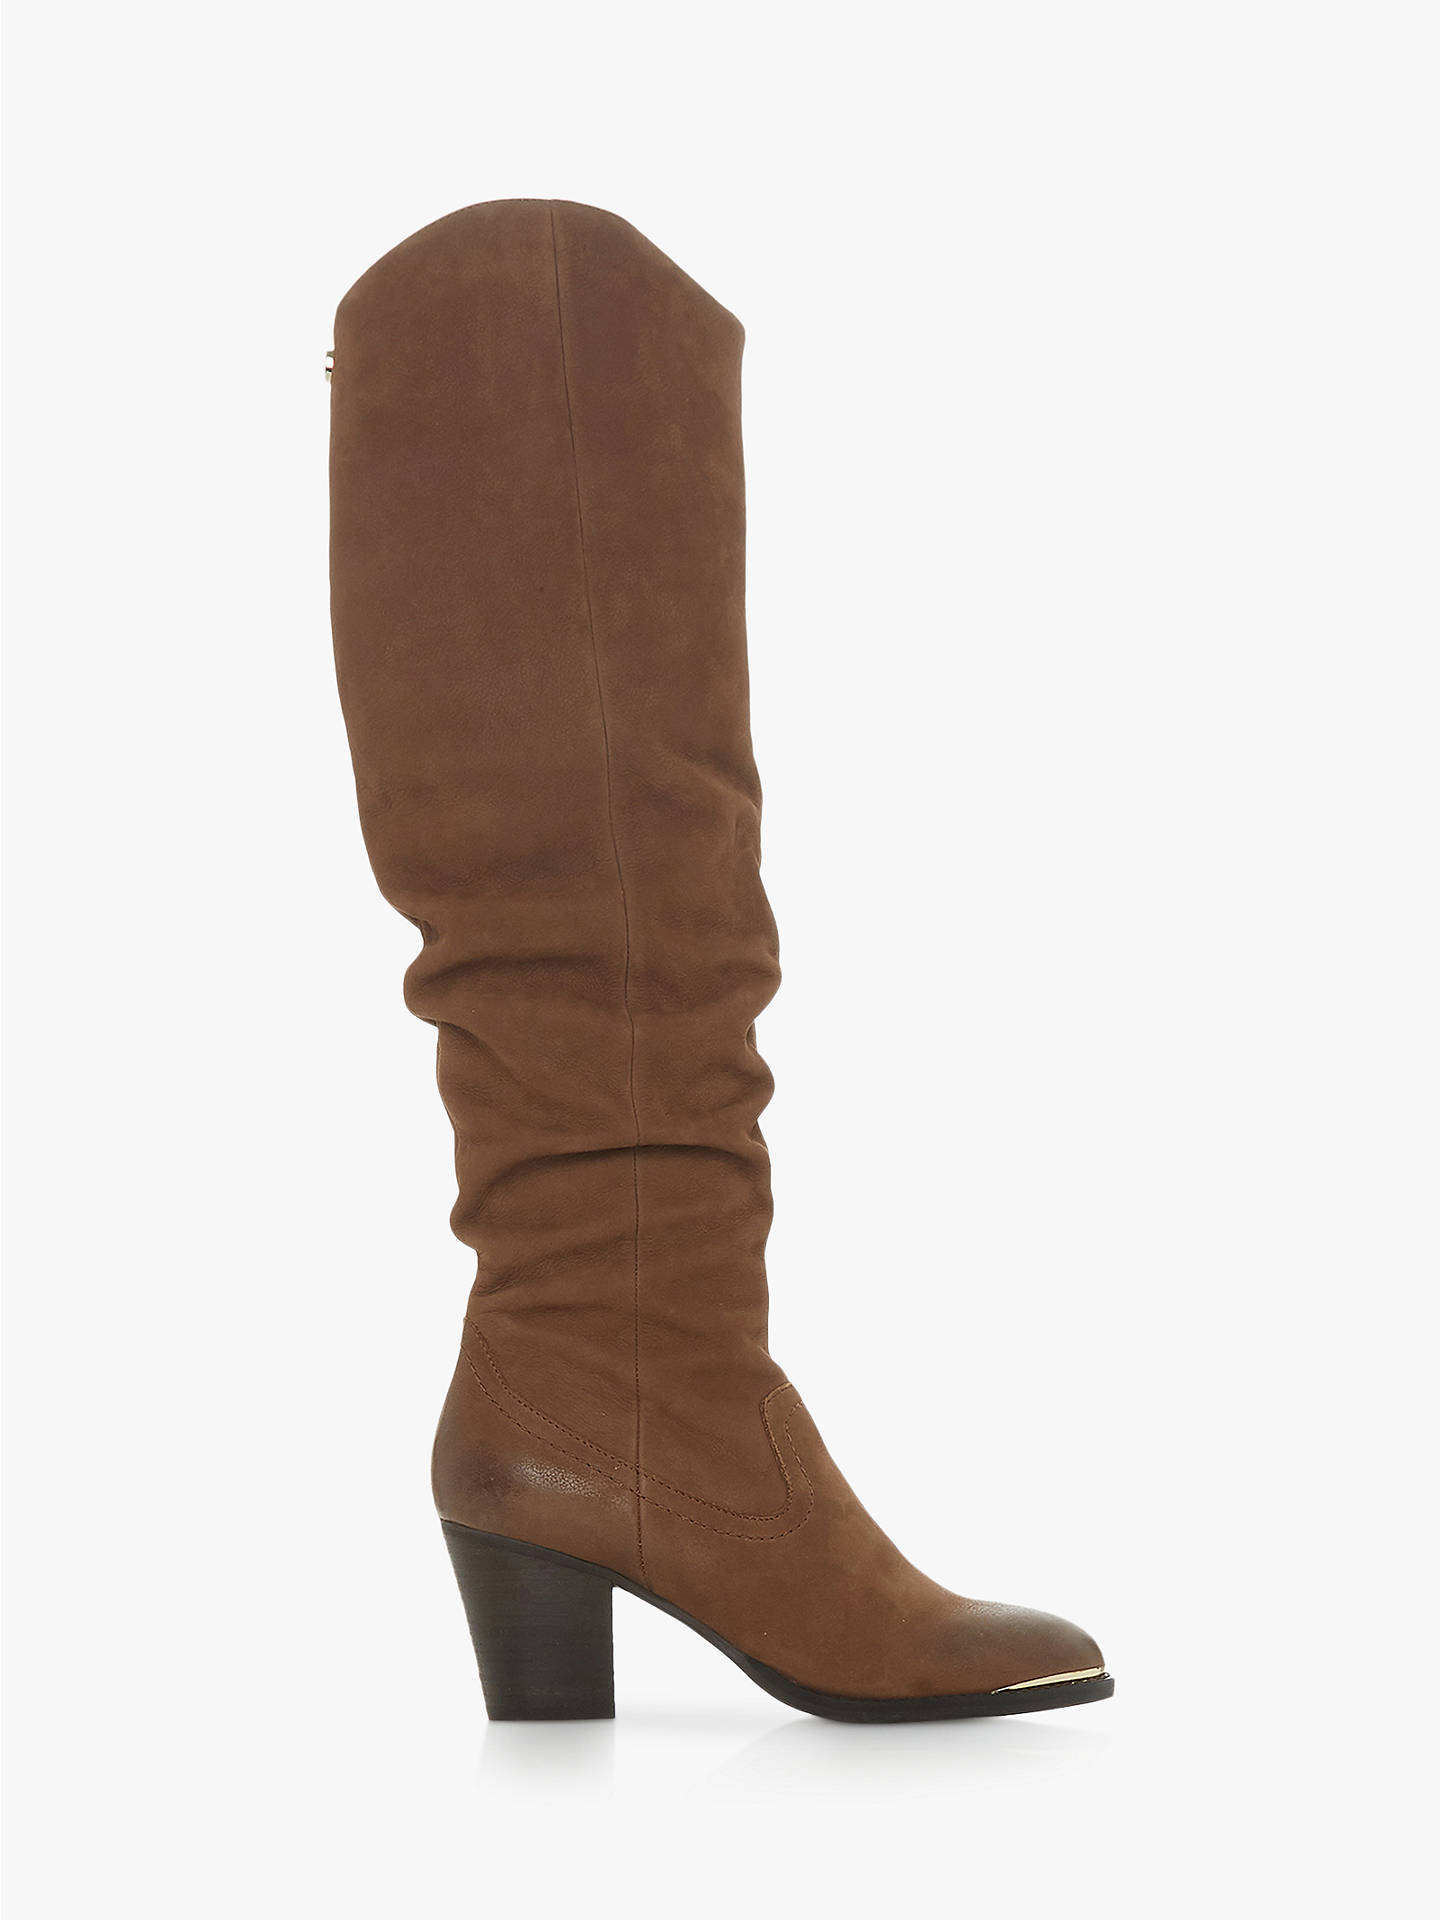 2e5842161d9 Buy Steve Madden Rova Knee High Boots